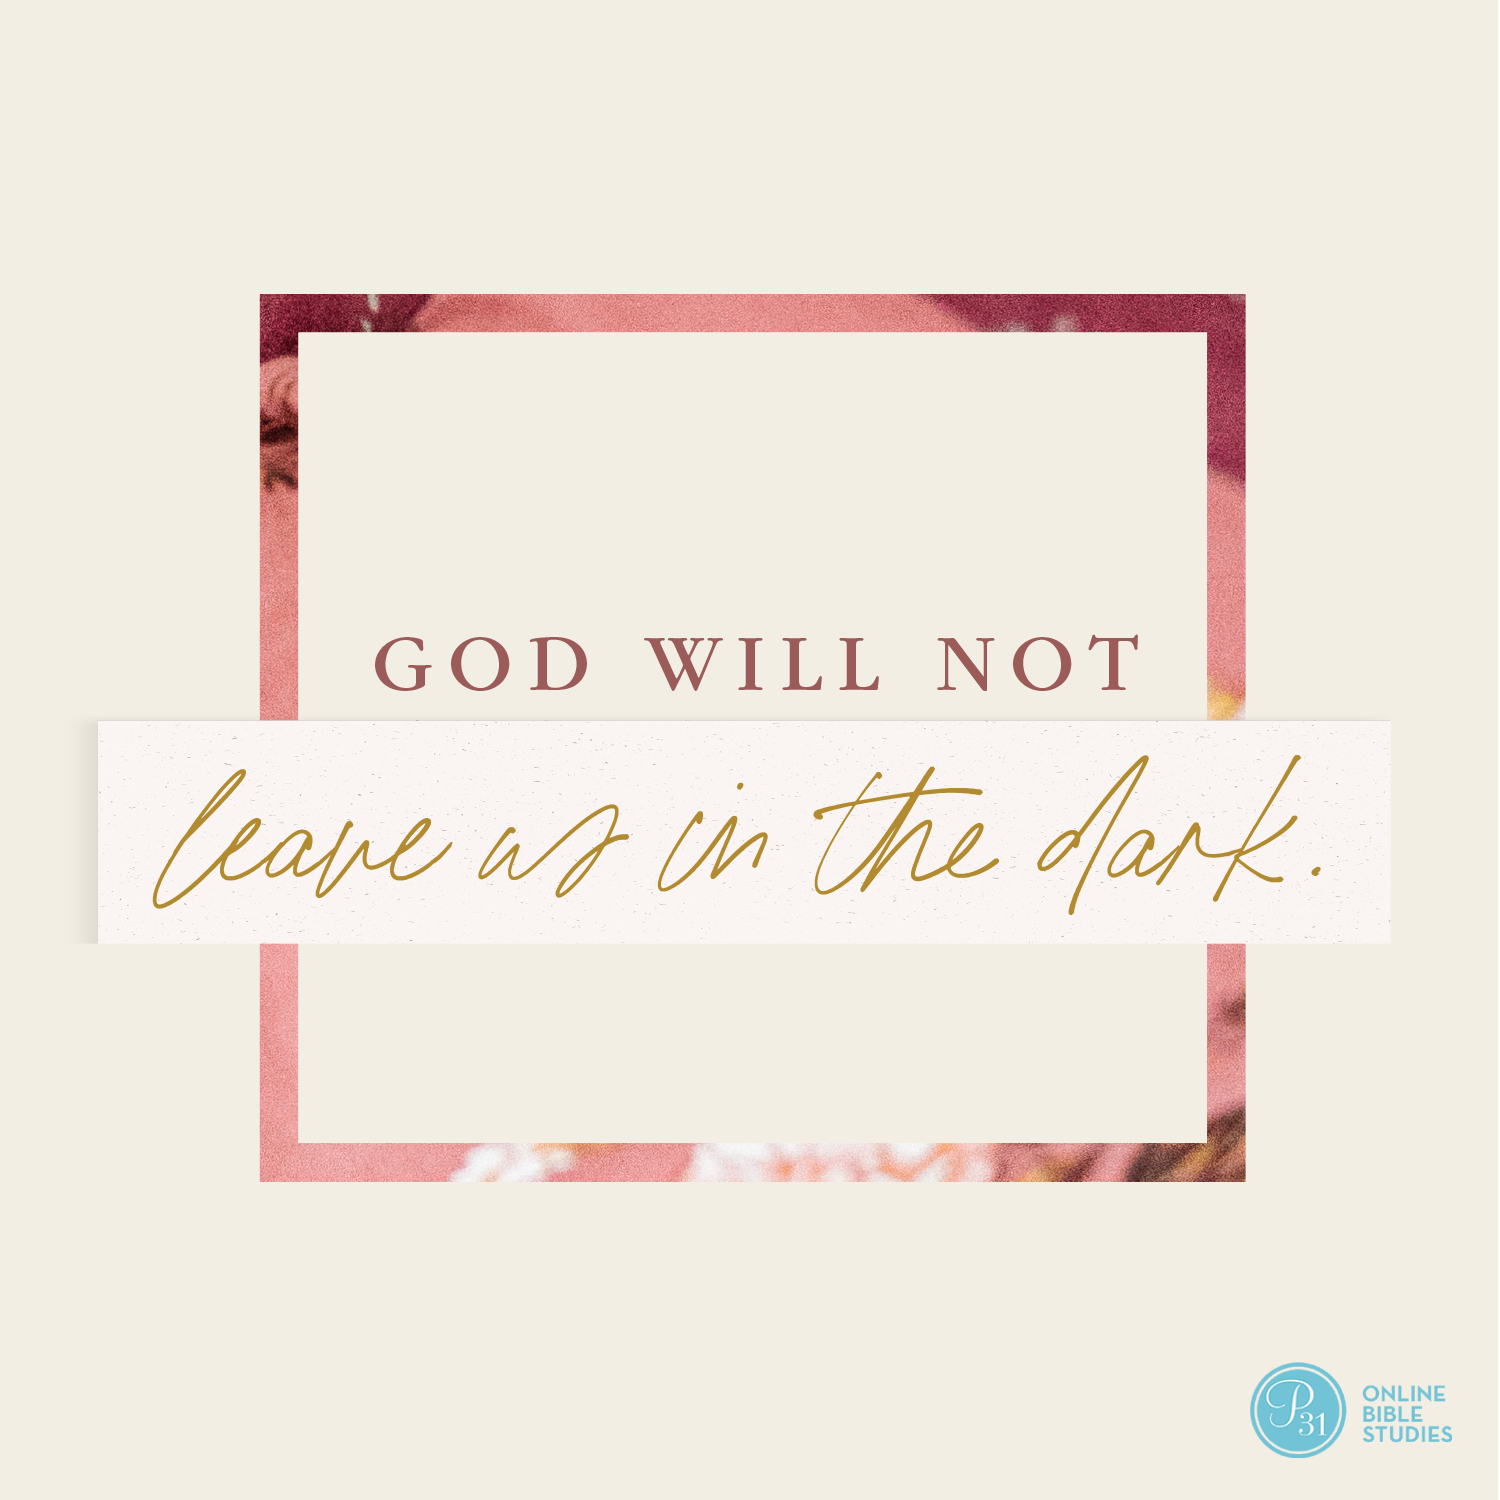 """God will not leave us in the dark."" - Max Lucado  #BecauseOfBethlehem 